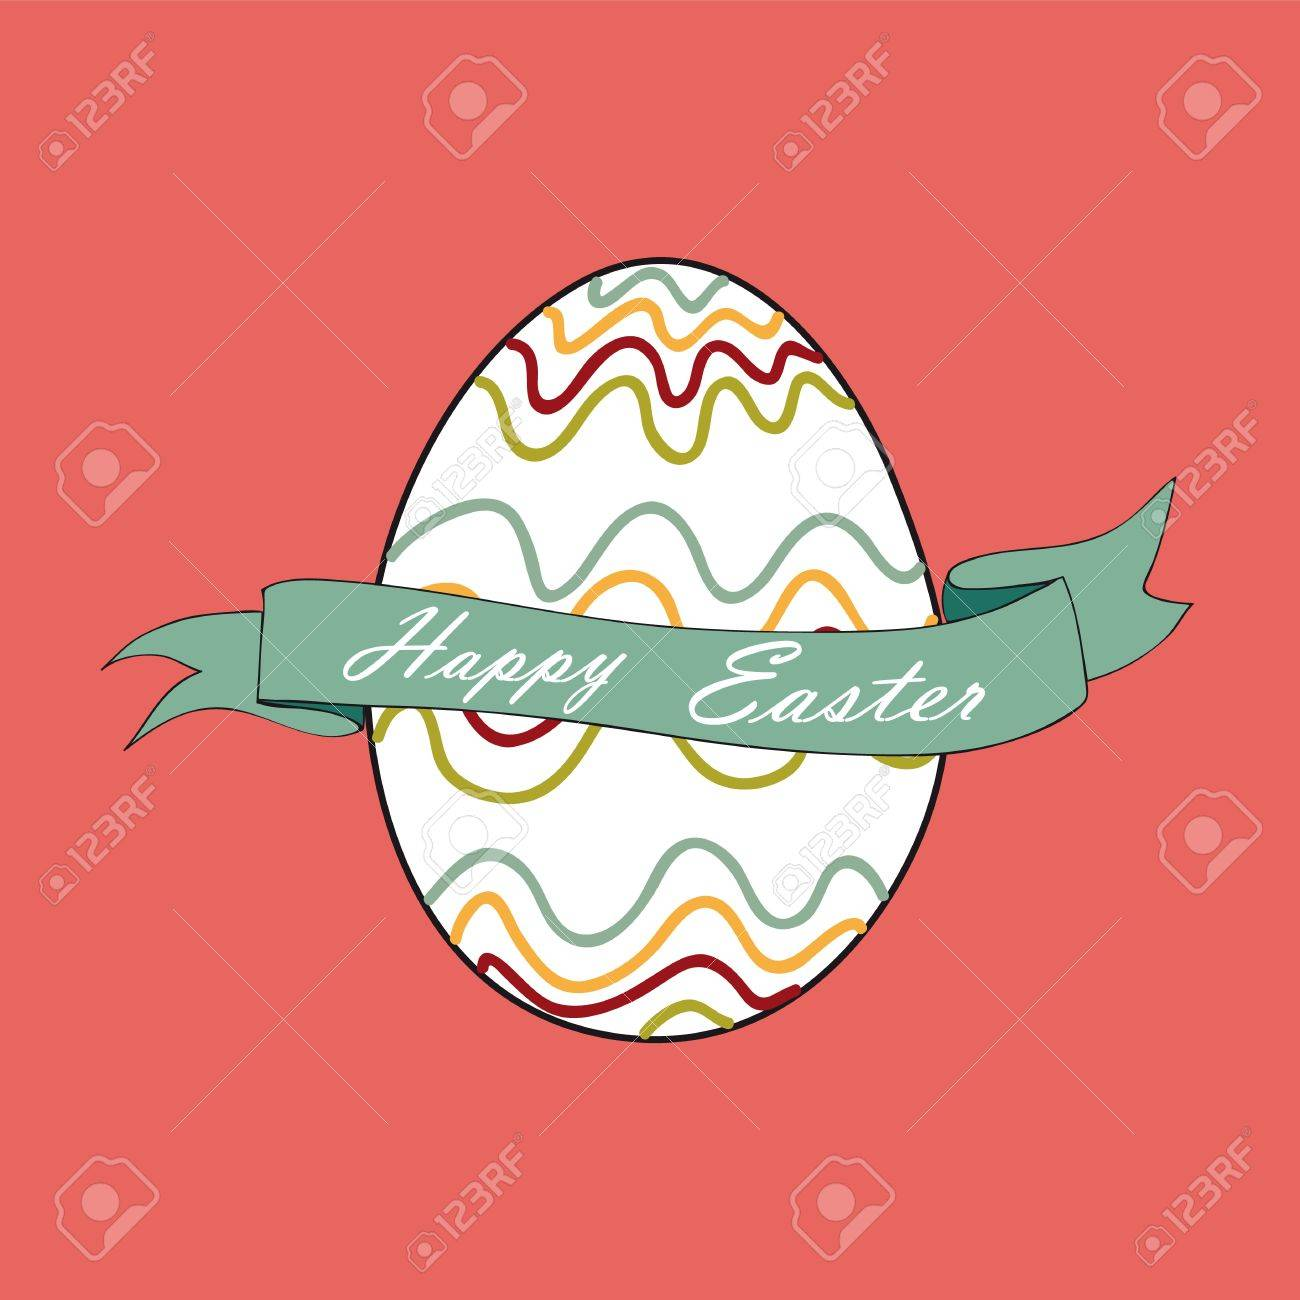 Single happy Easter egg greeting card background.  file layered for easy manipulation and customisation. Stock Vector - 18221158